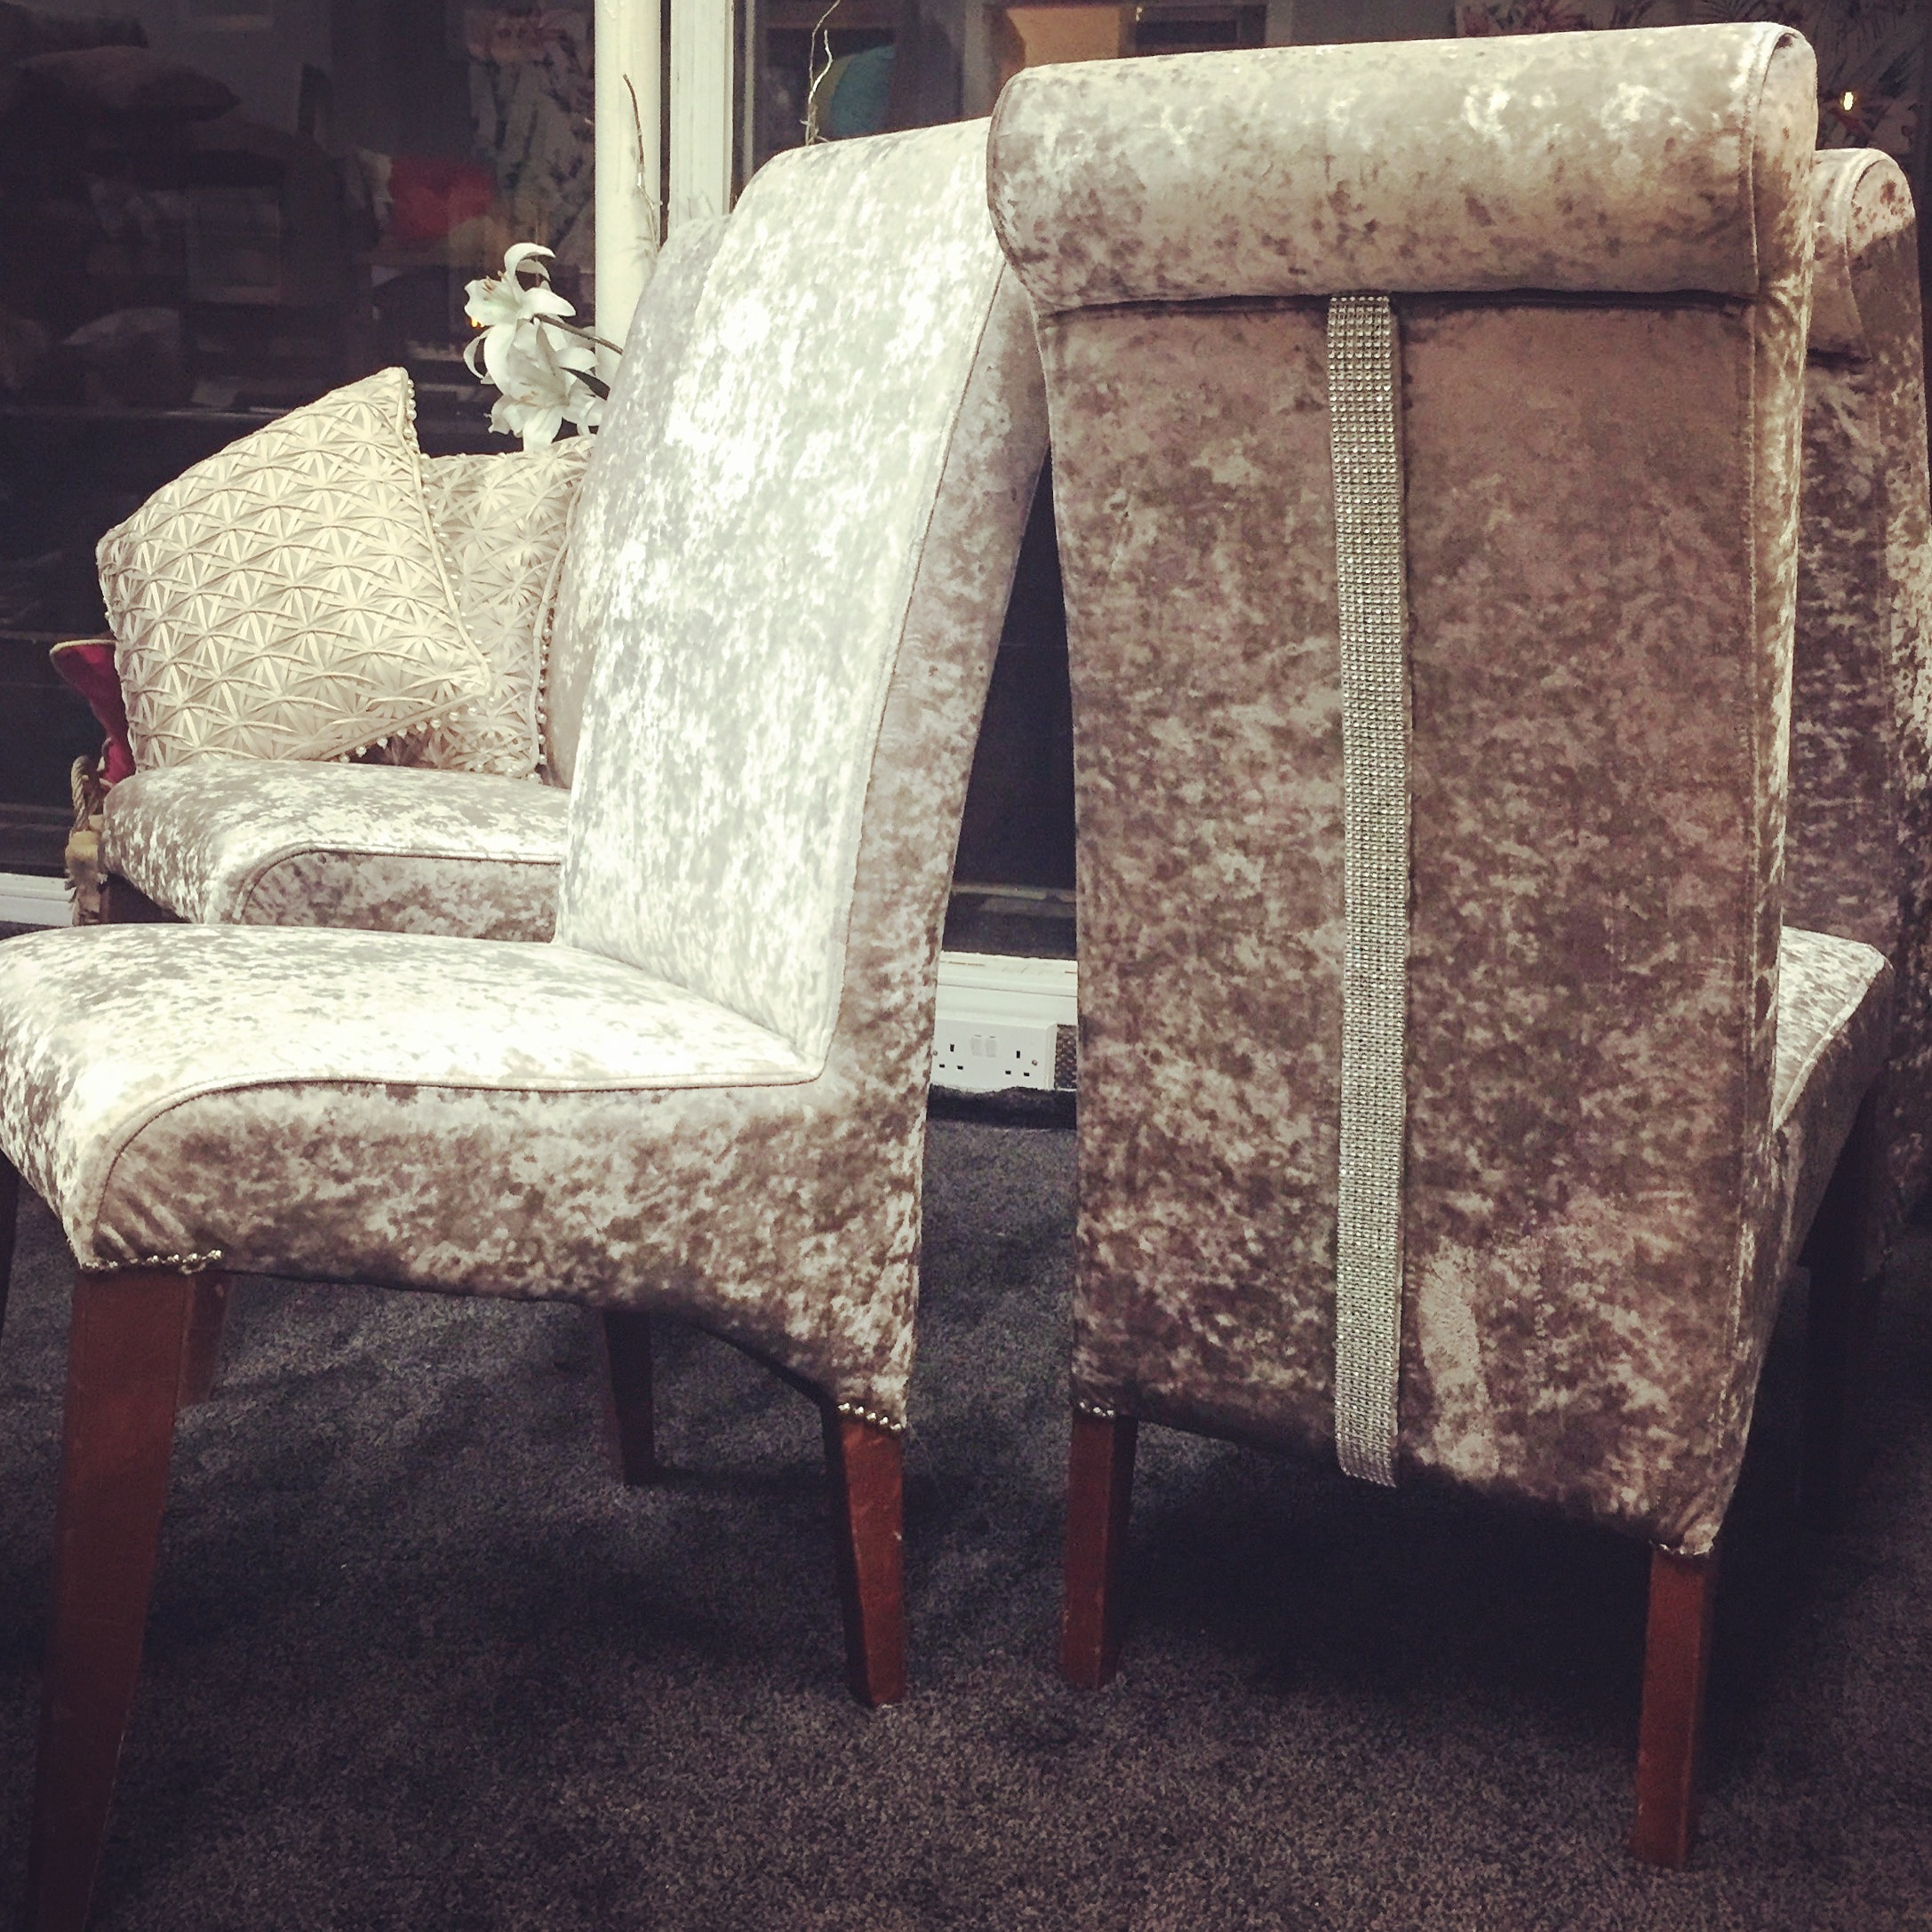 Chairs upholstered by Interior Connections